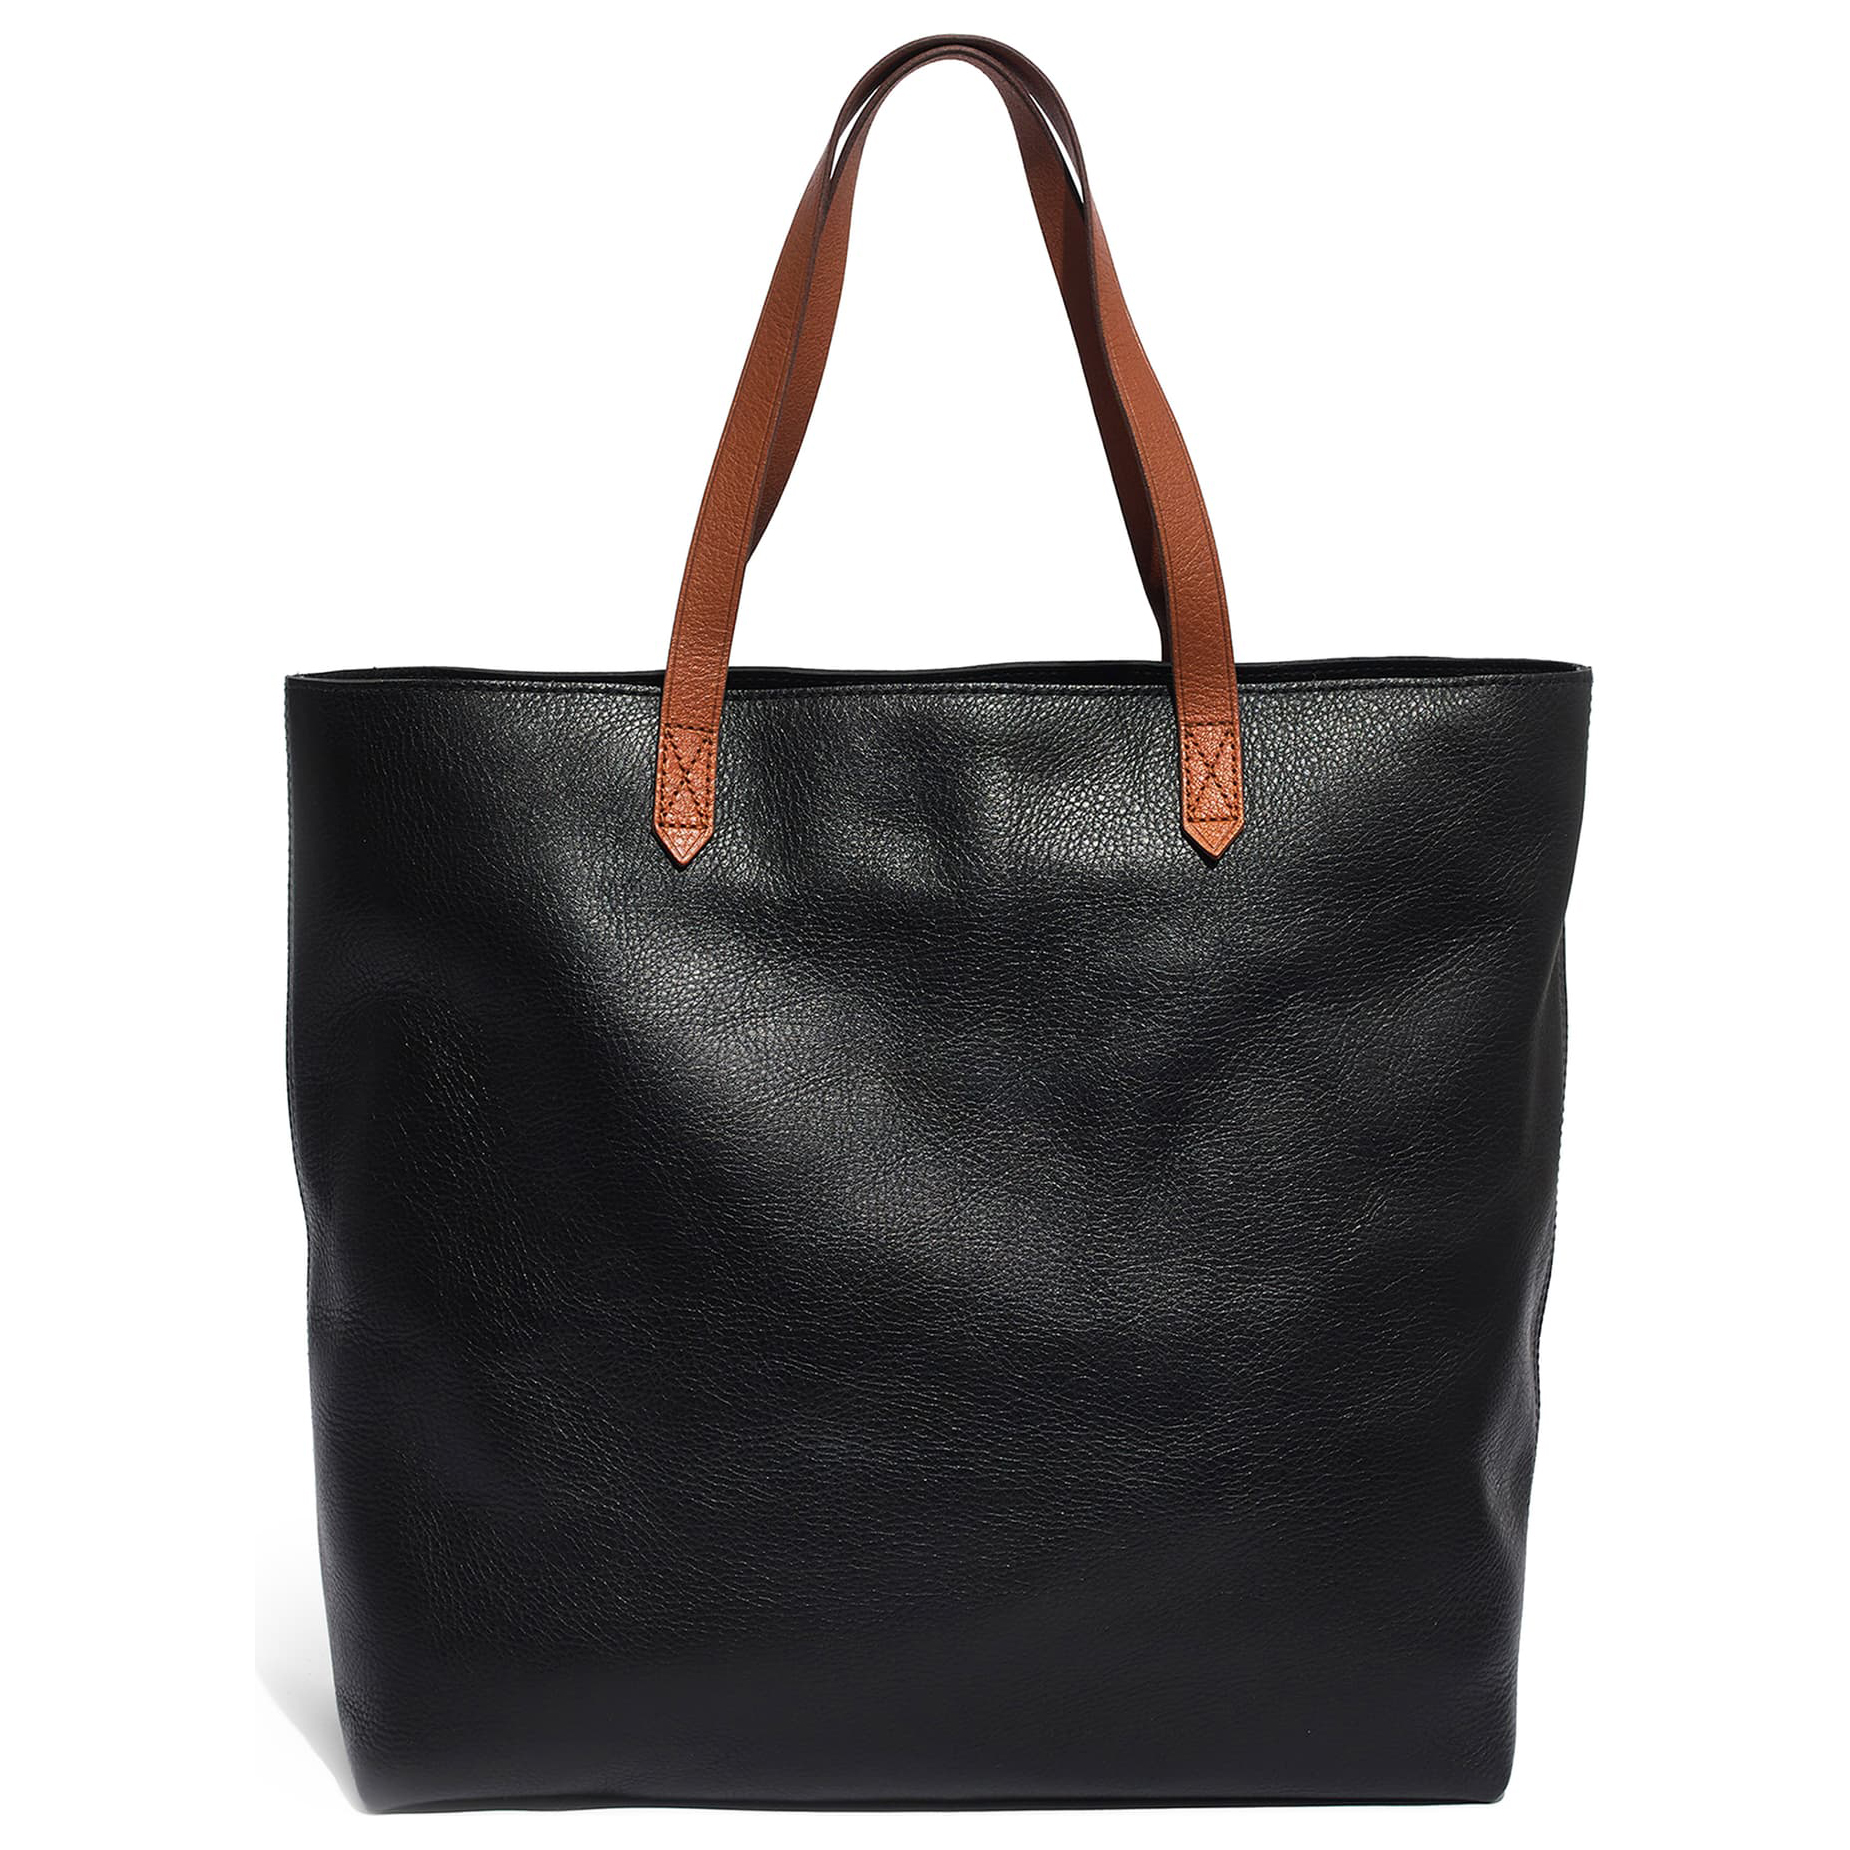 Madewell Zip Top Transport Leather Tote Black